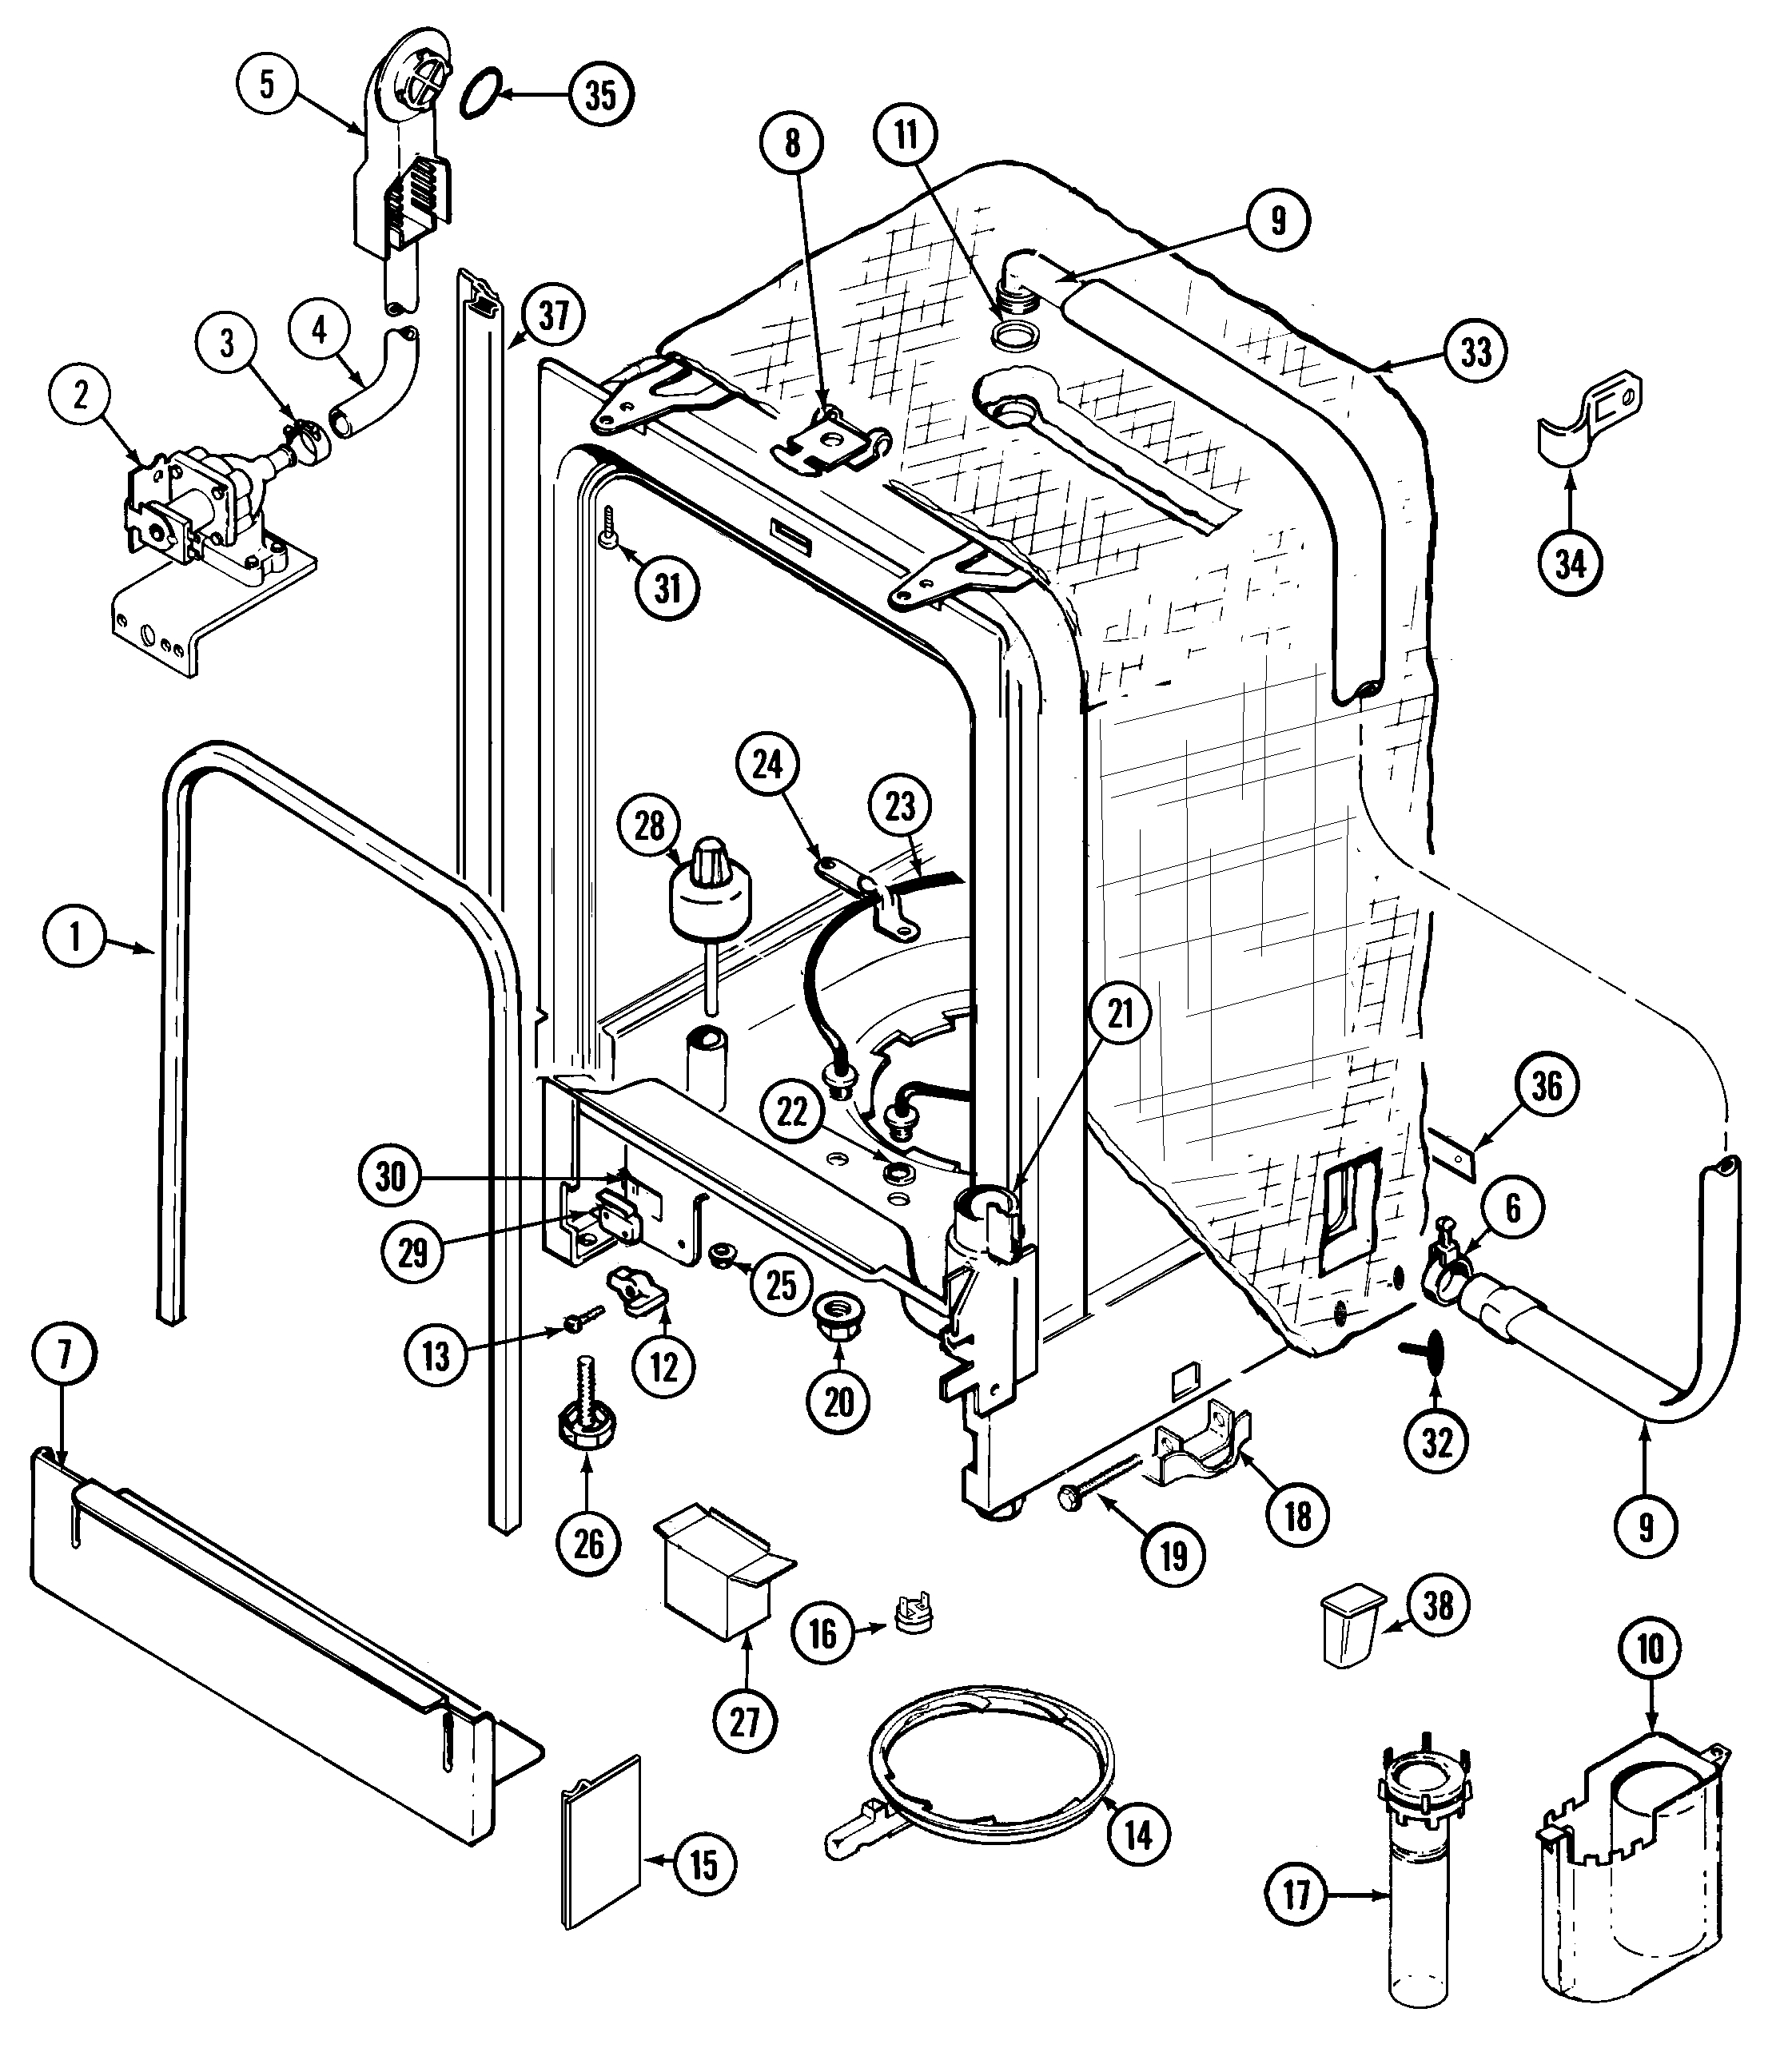 whirlpool microwave wiring diagram multiple outlets dishwasher download